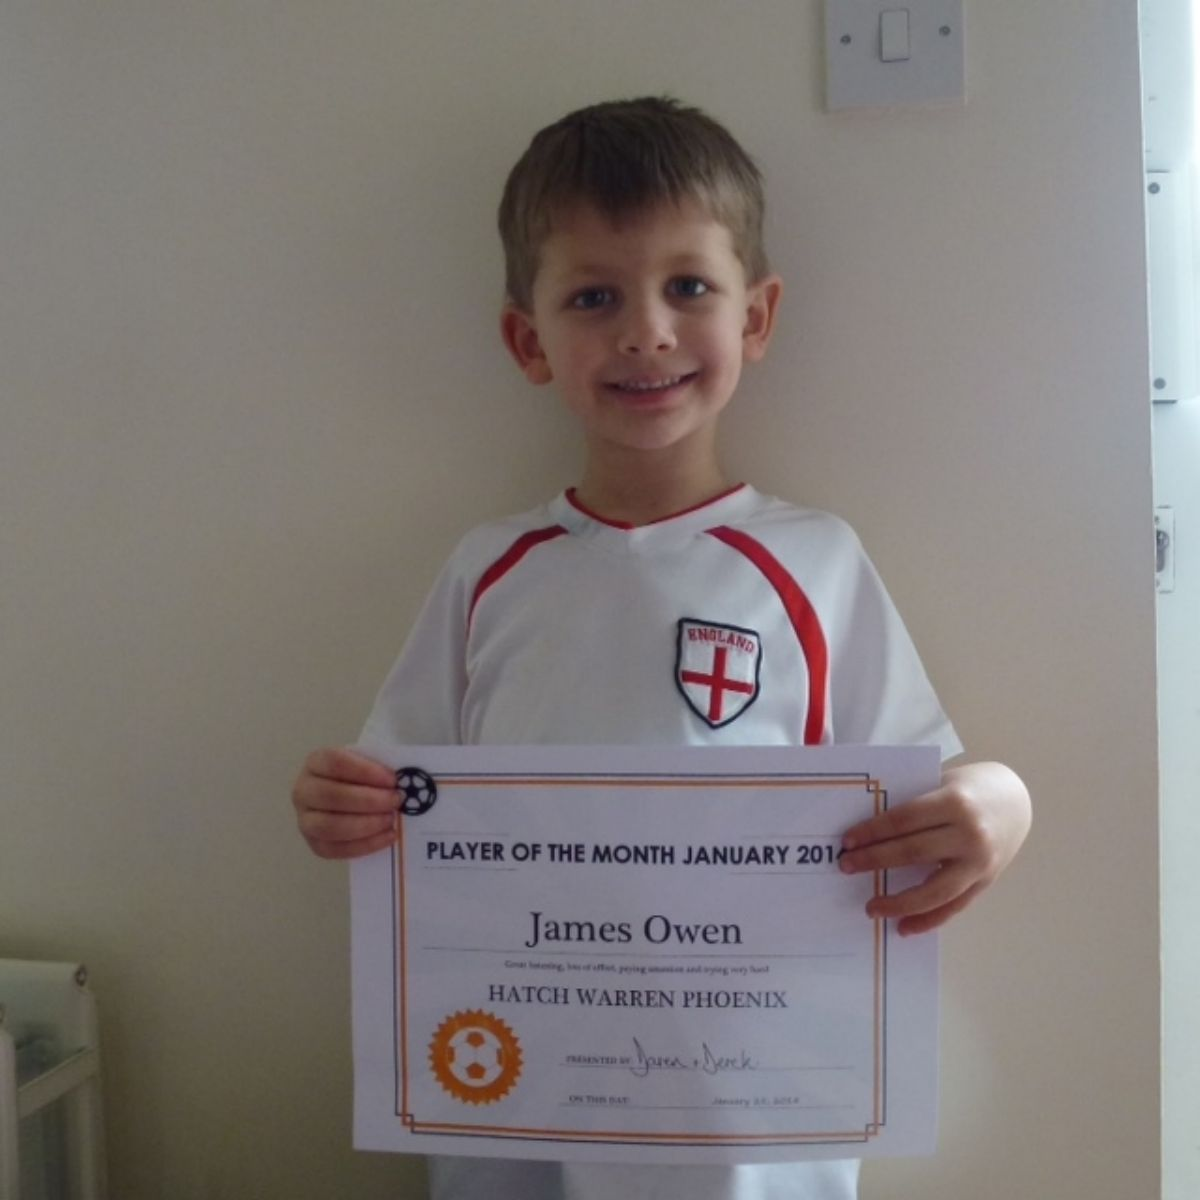 Player of the month James Owen.